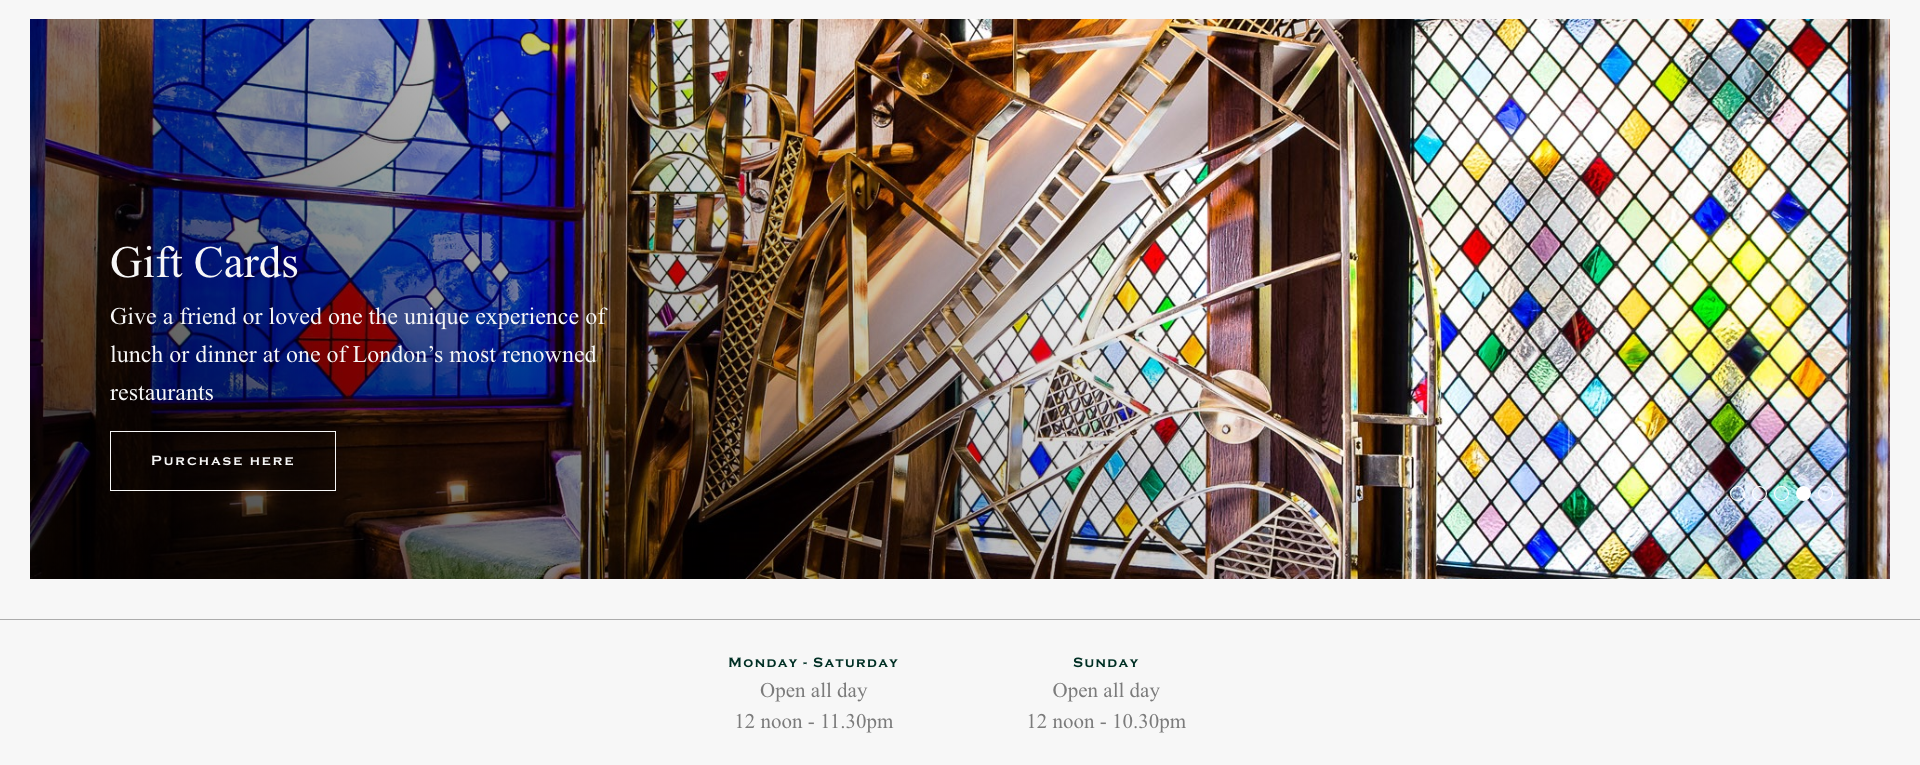 The Ivy England Restaurant Gift Card on Website